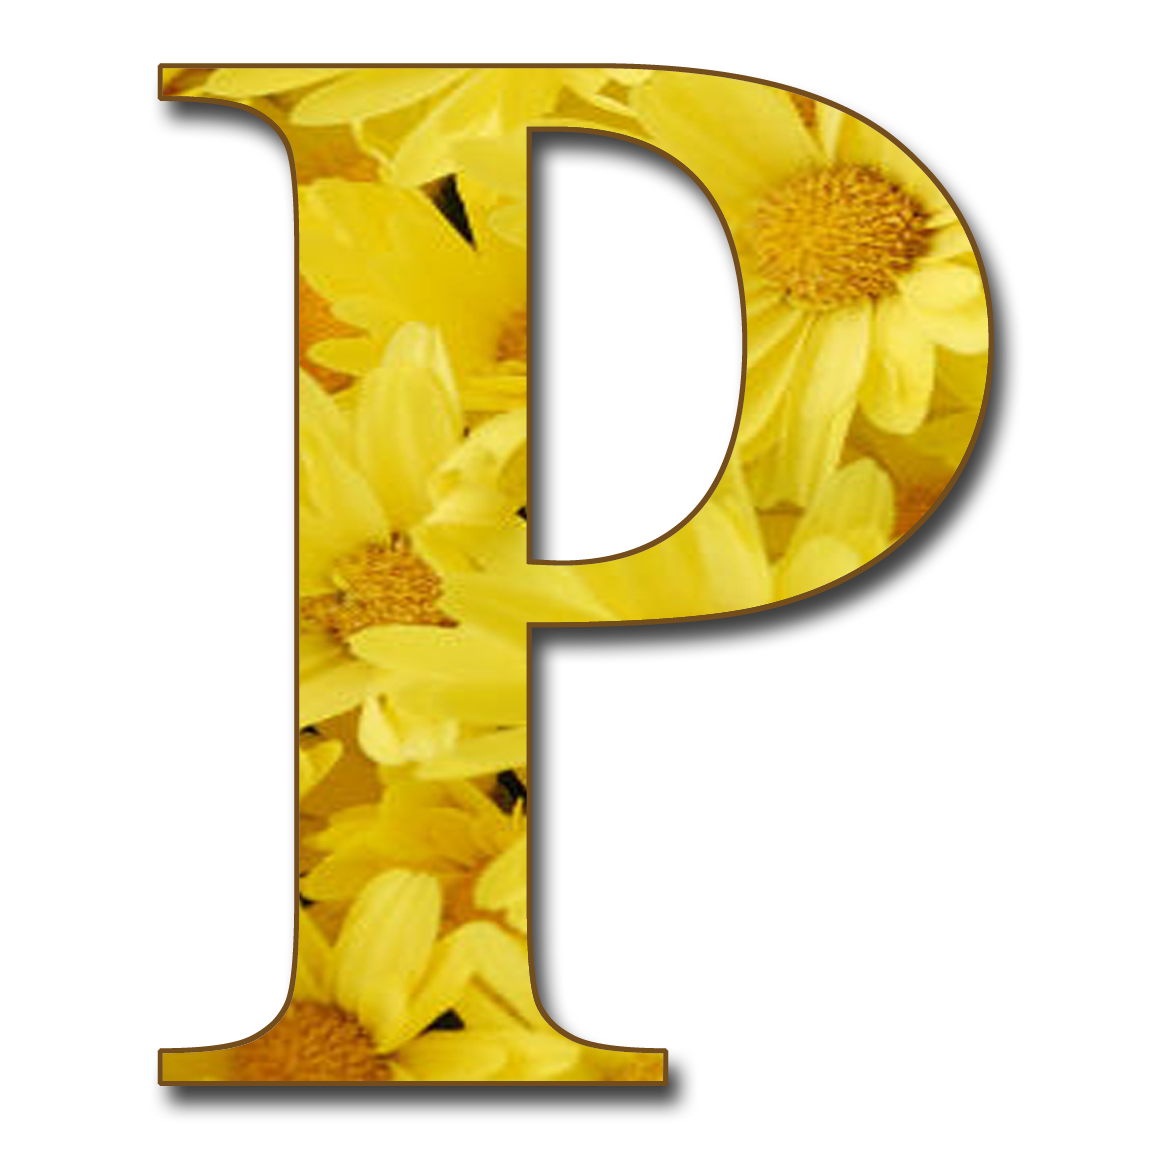 Letter p with the shadow png. For me and my